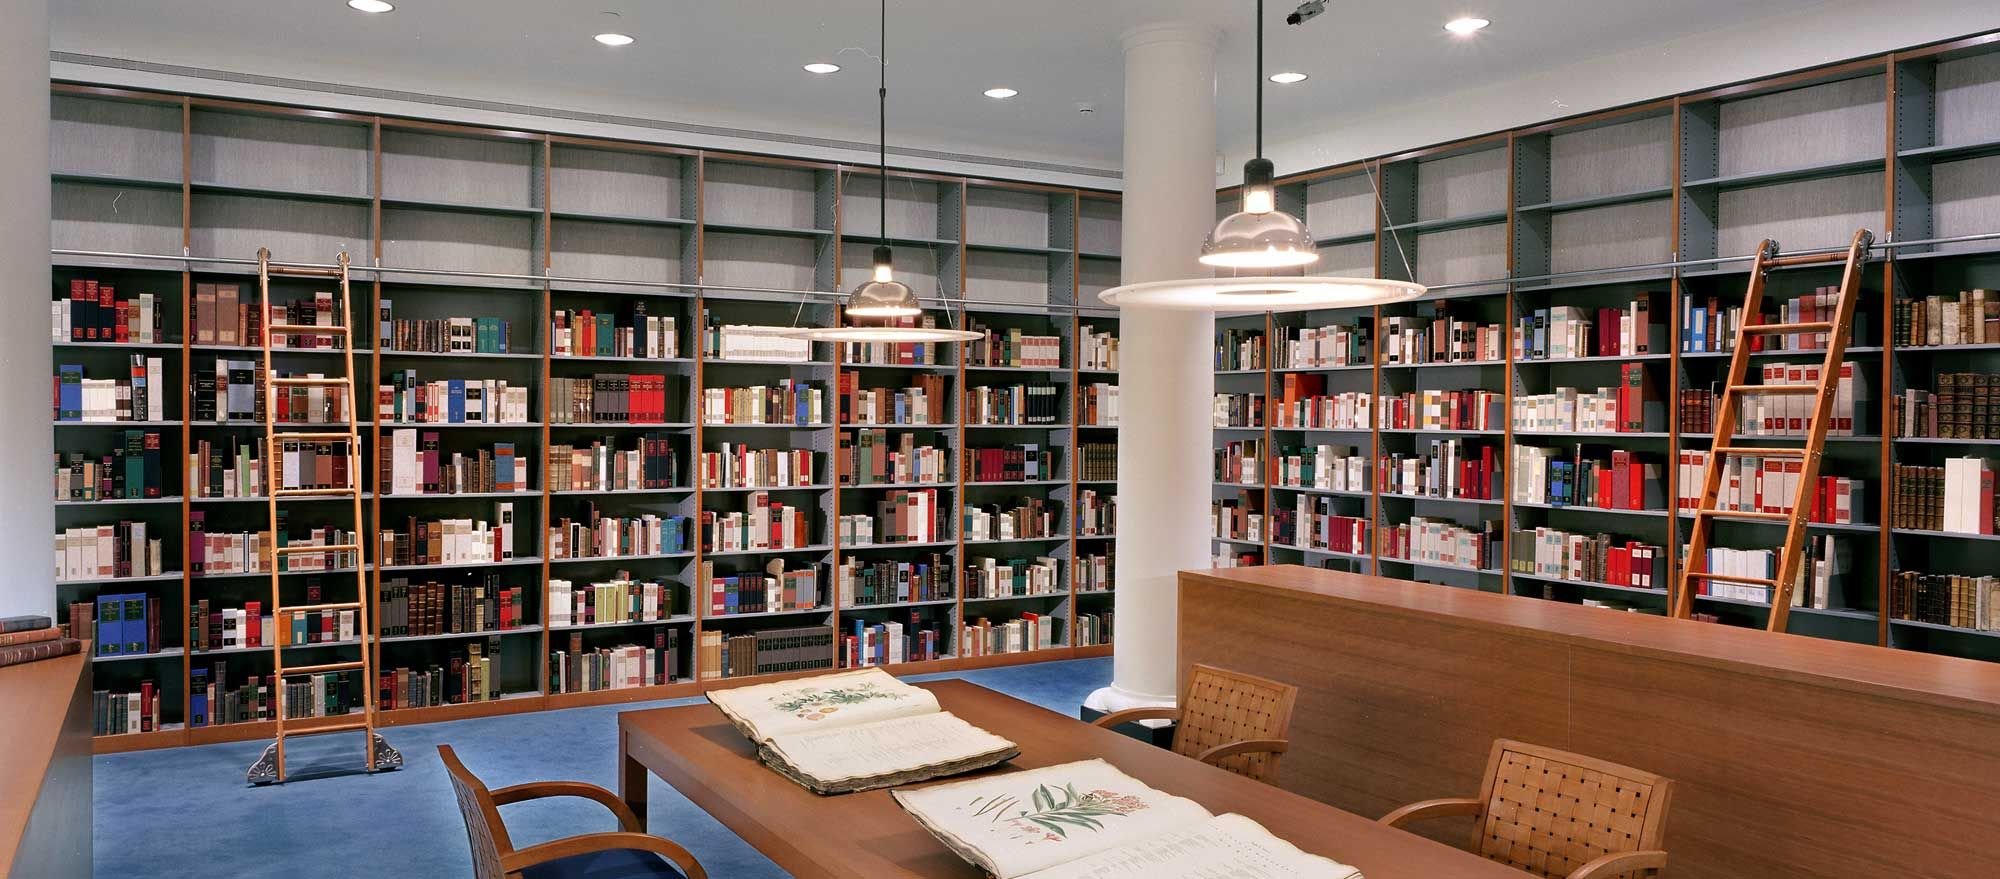 Tall library shelving for book storage along wall. Wall storage for library  shelving allows the